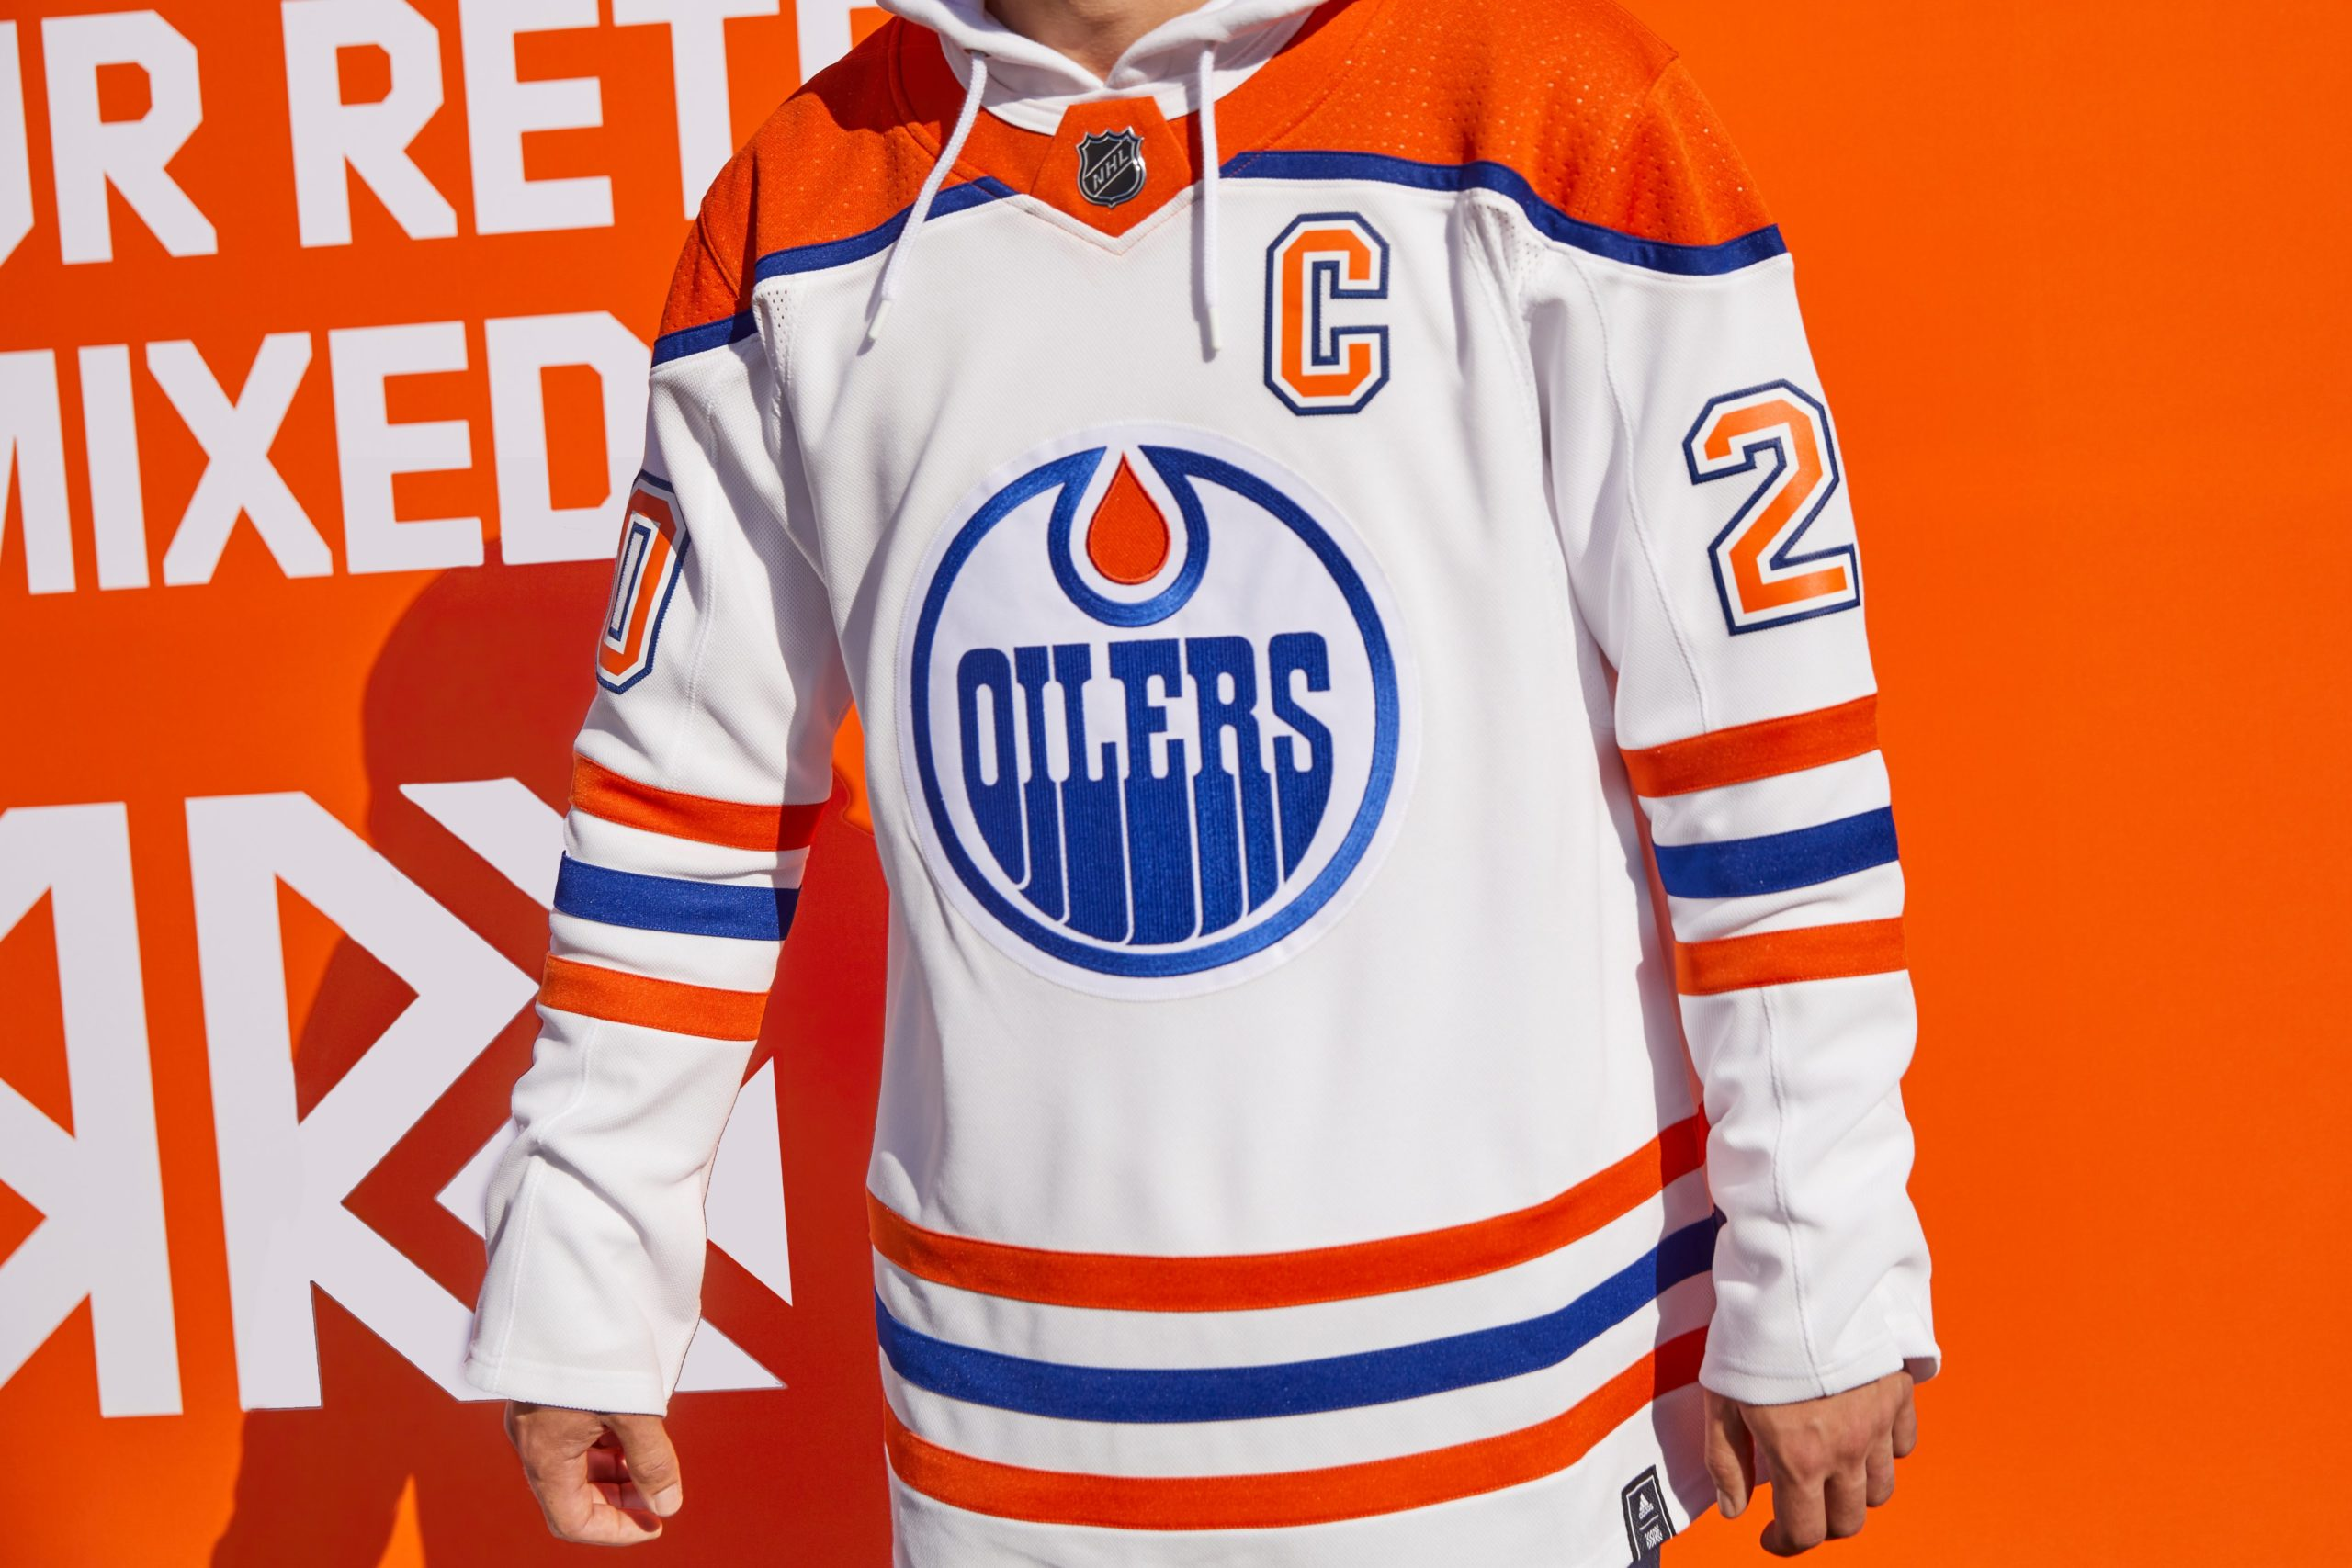 The NHL's reverse retro jerseys are here!